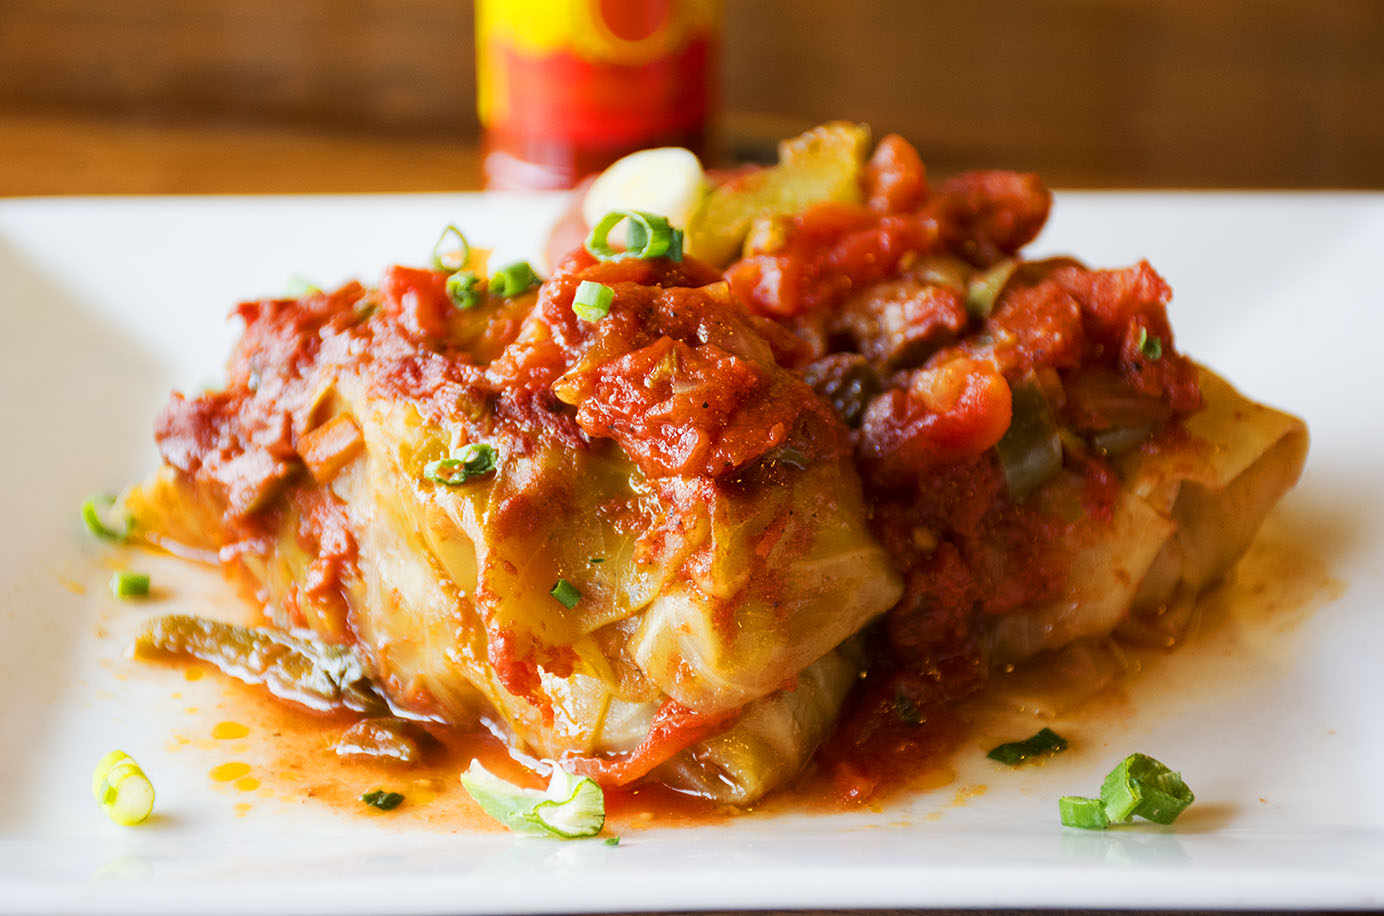 Stuffed Cabbage.jpg